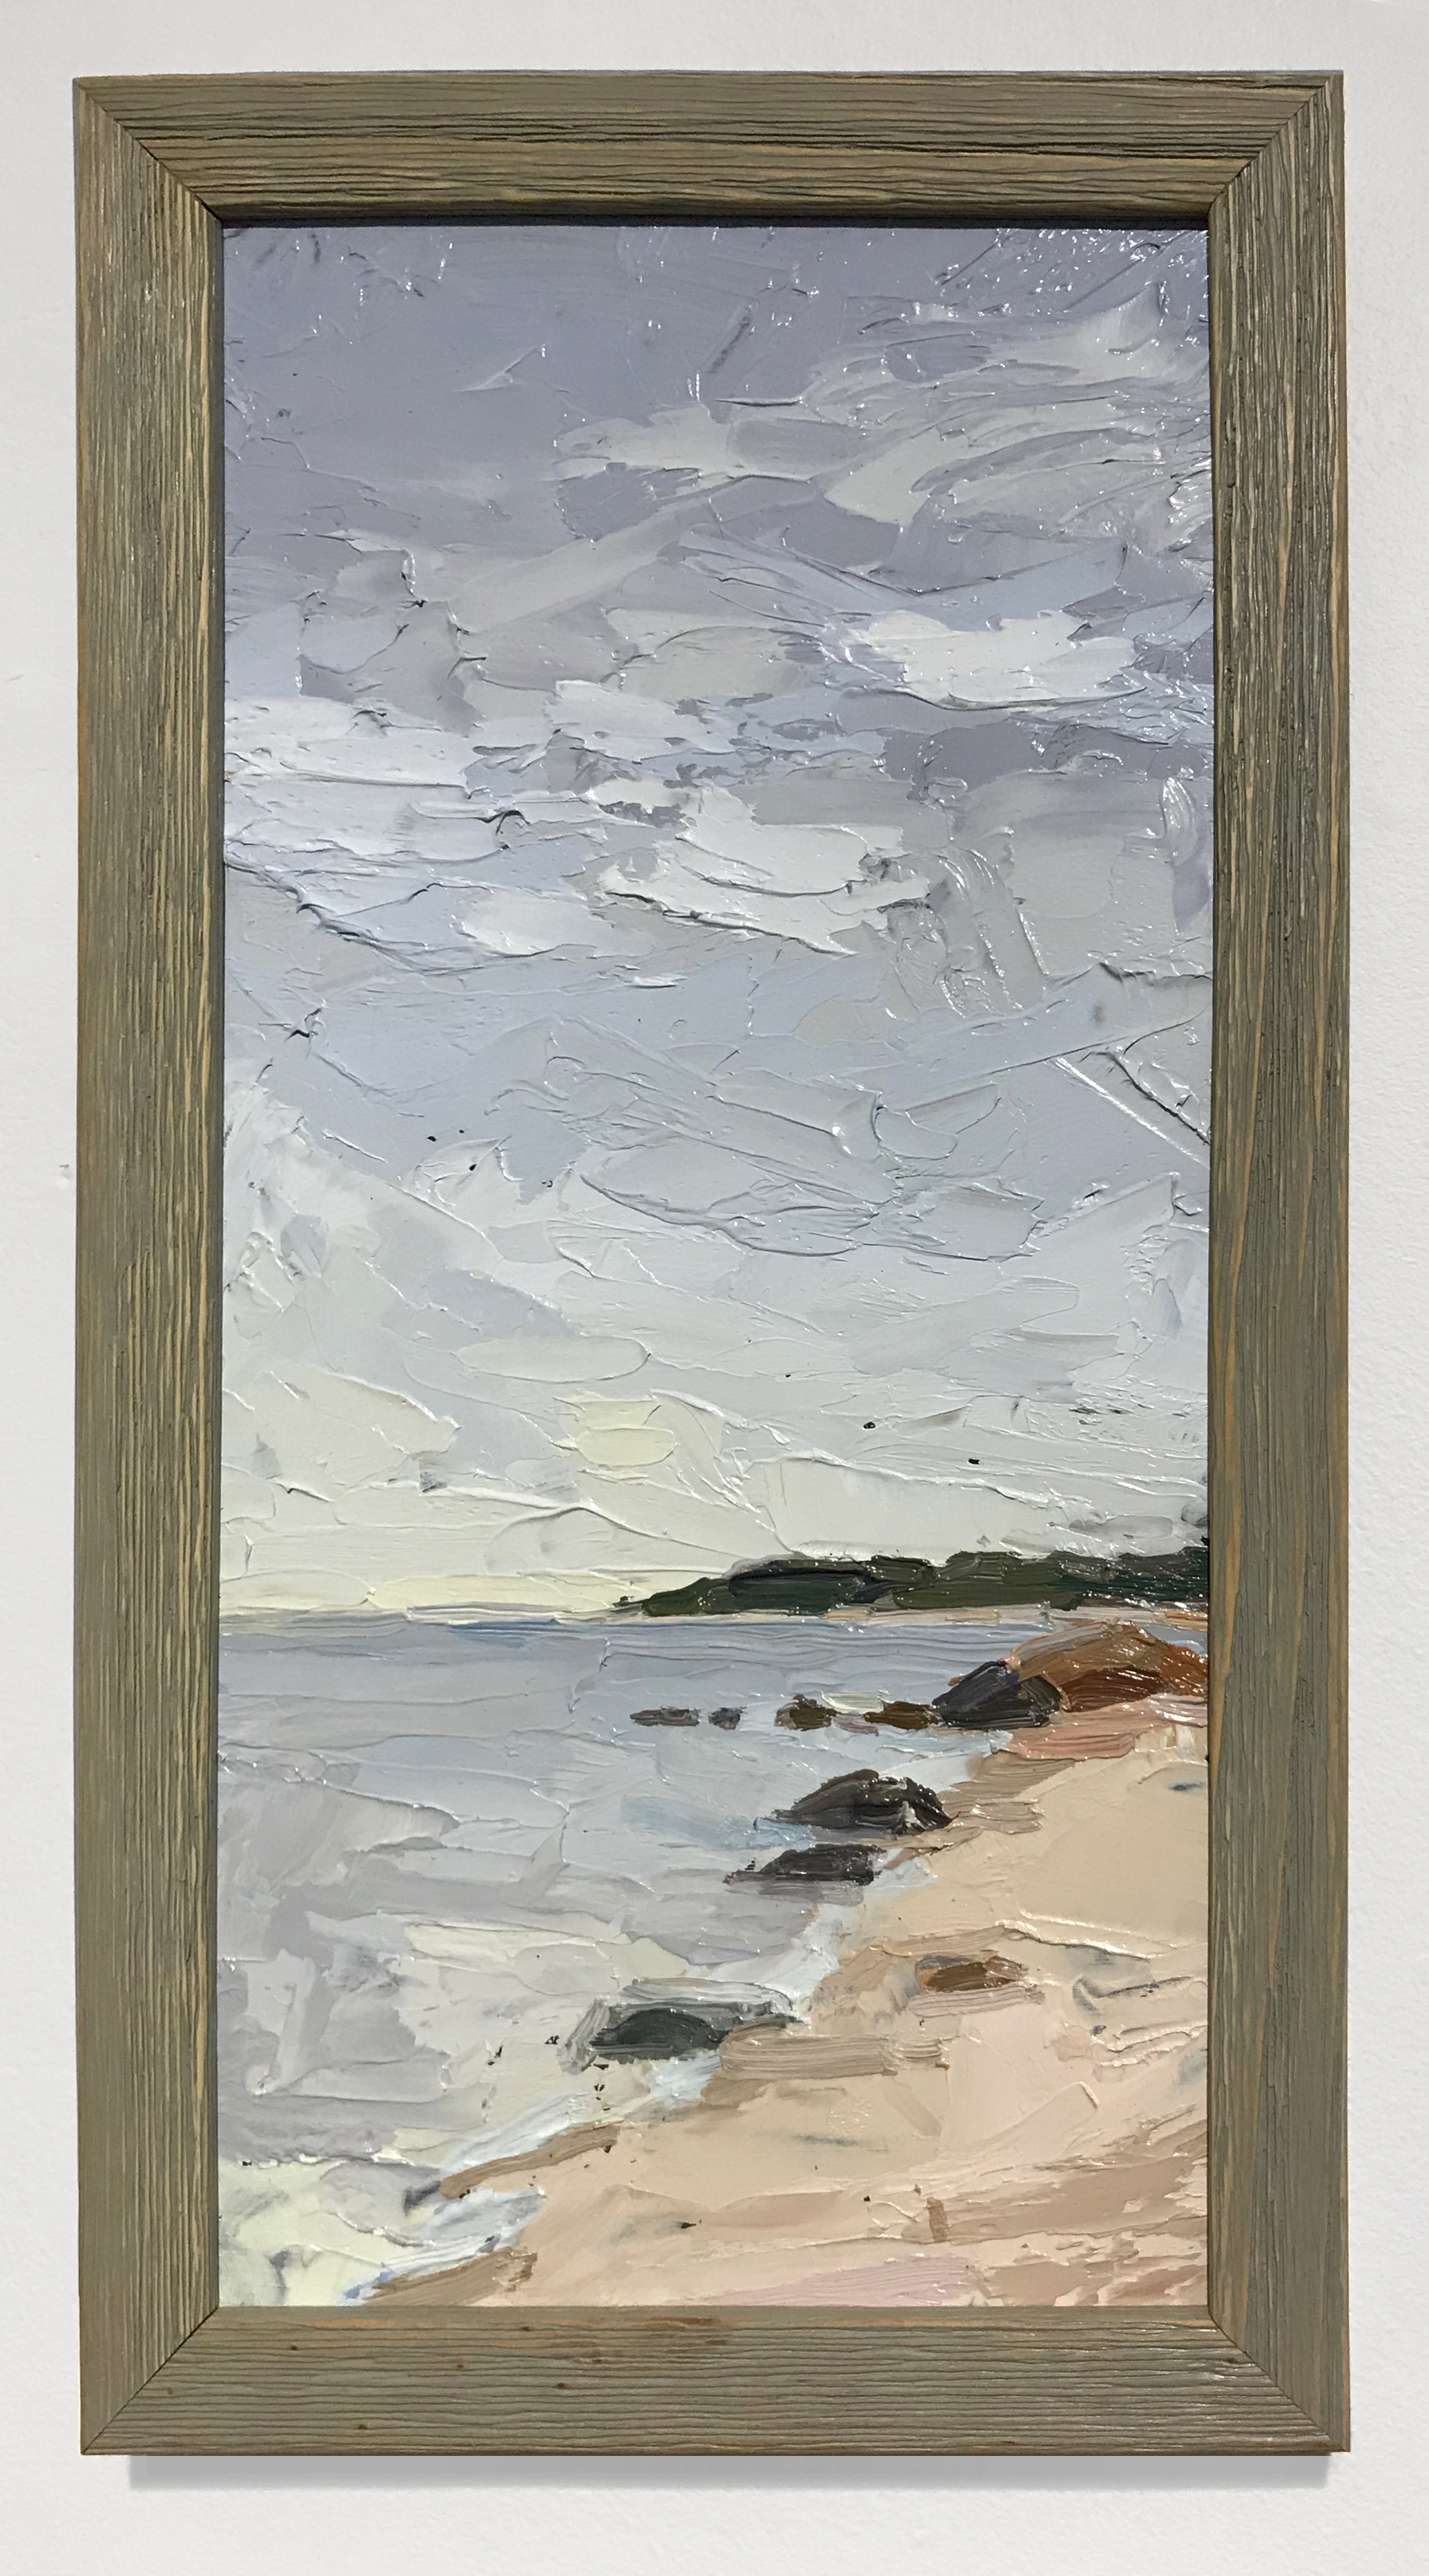 - Amy WorthSoundview 20182018Oil on board in artist's frame13 x 7 inches